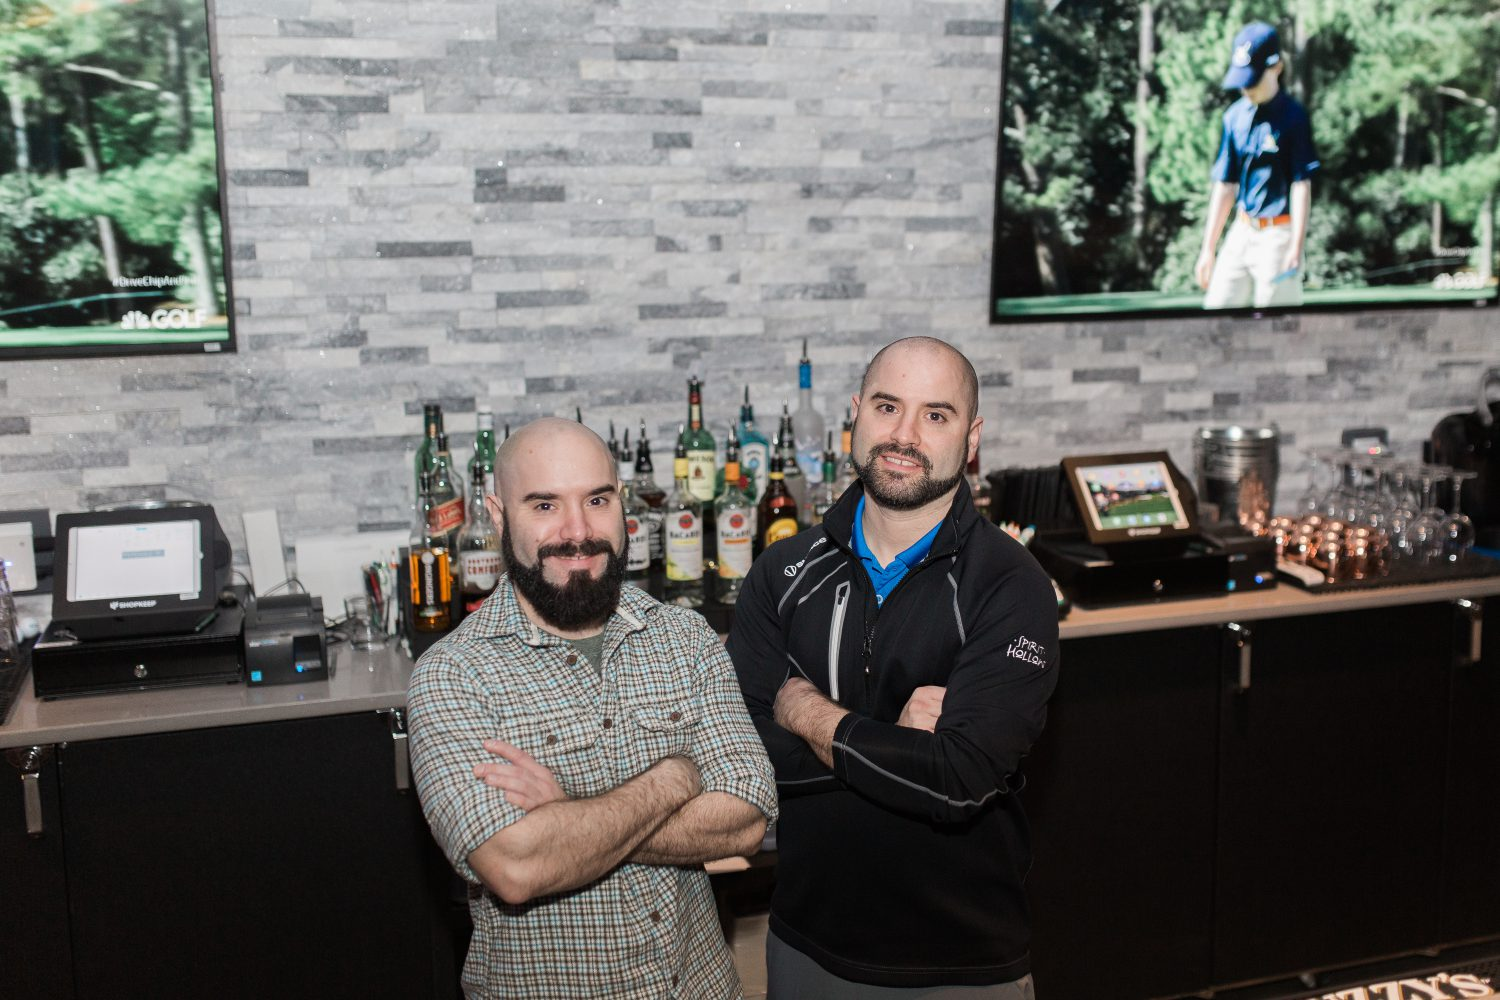 Broheims-Indoor-Golf-And-Pub-Waukee-Iowa-Brothers-Owners